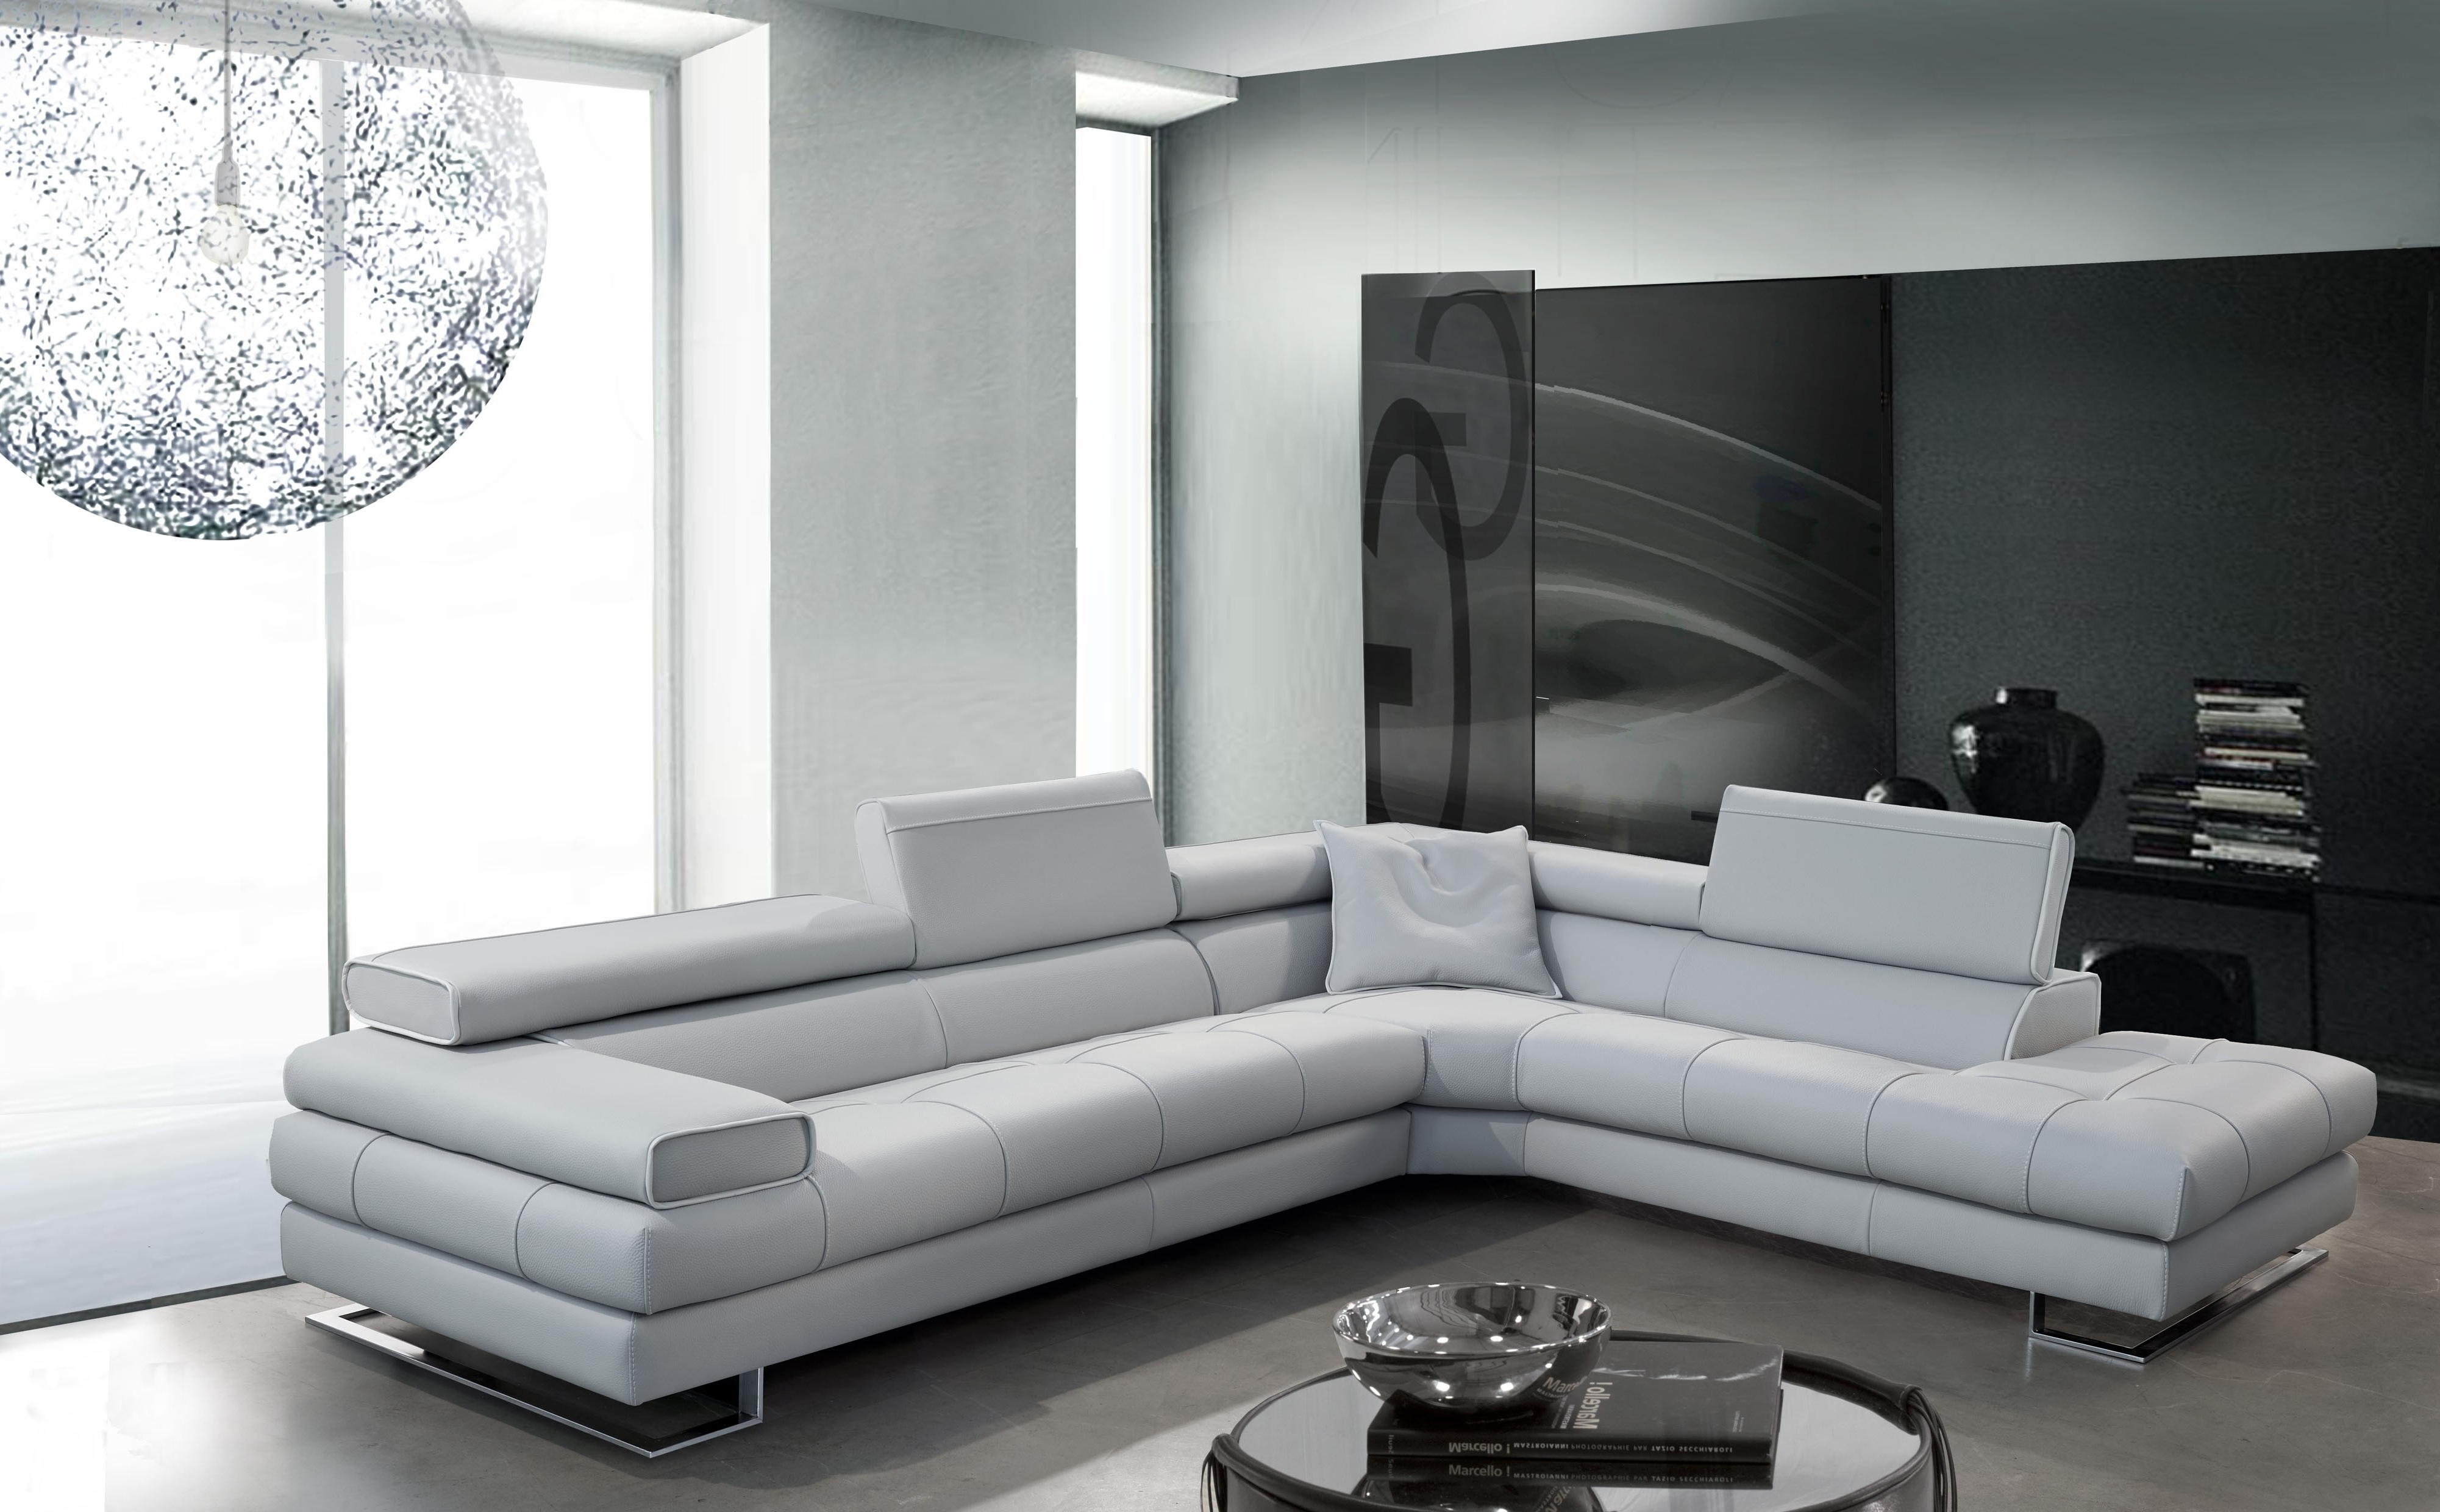 Modern Microfiber Sectional Sofas For Well Known Modern Microfiber Sectional Sofas – Szfpbgj (View 12 of 20)